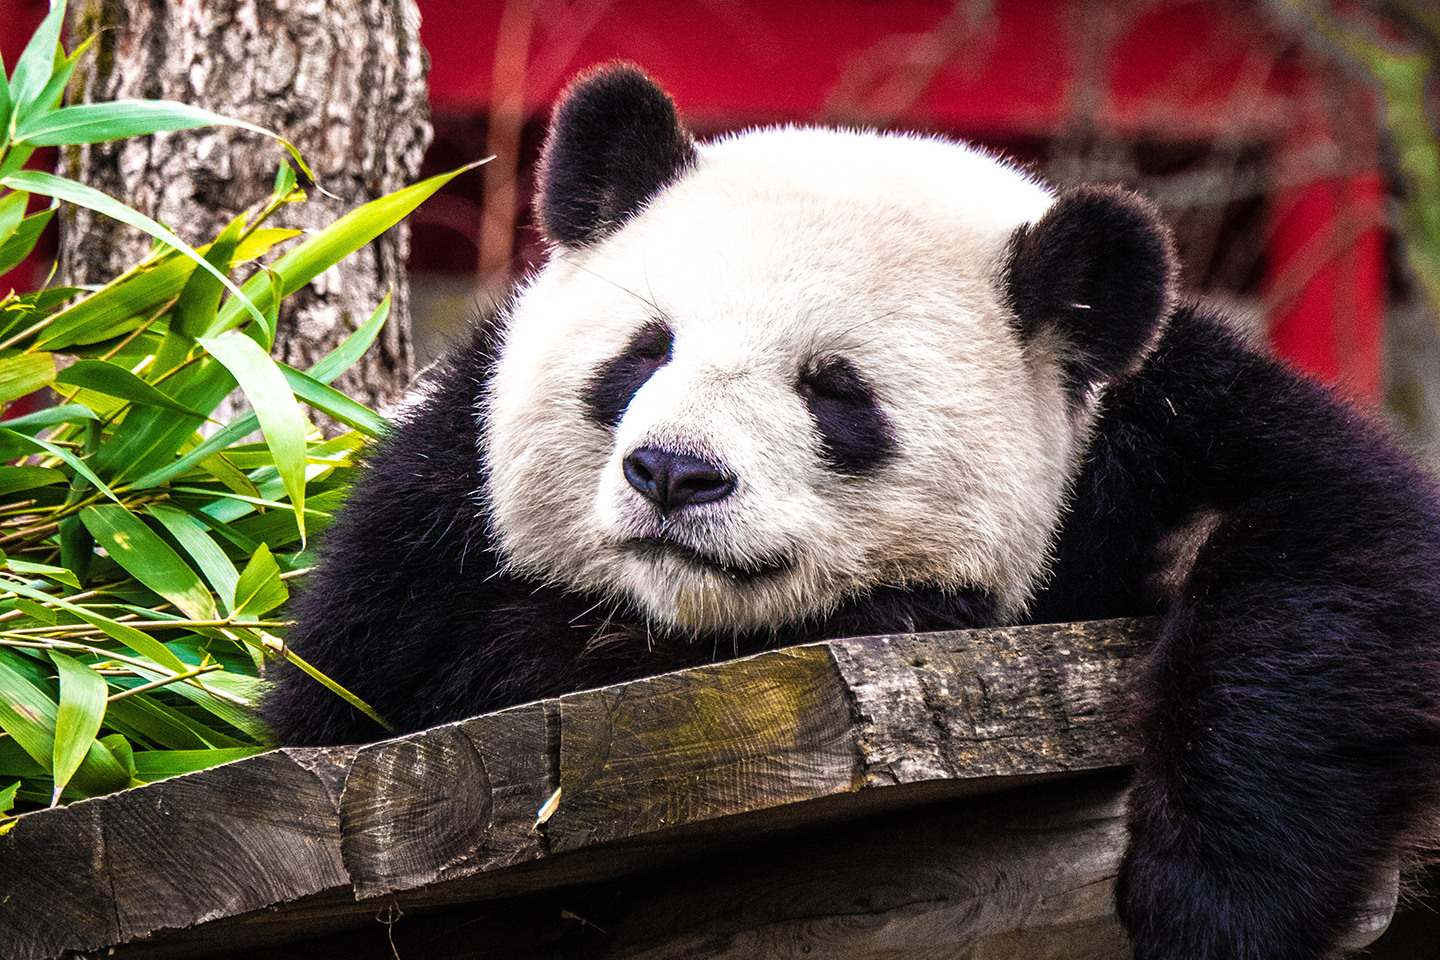 Panda diplomacy: Gifting pandas to further China's politics